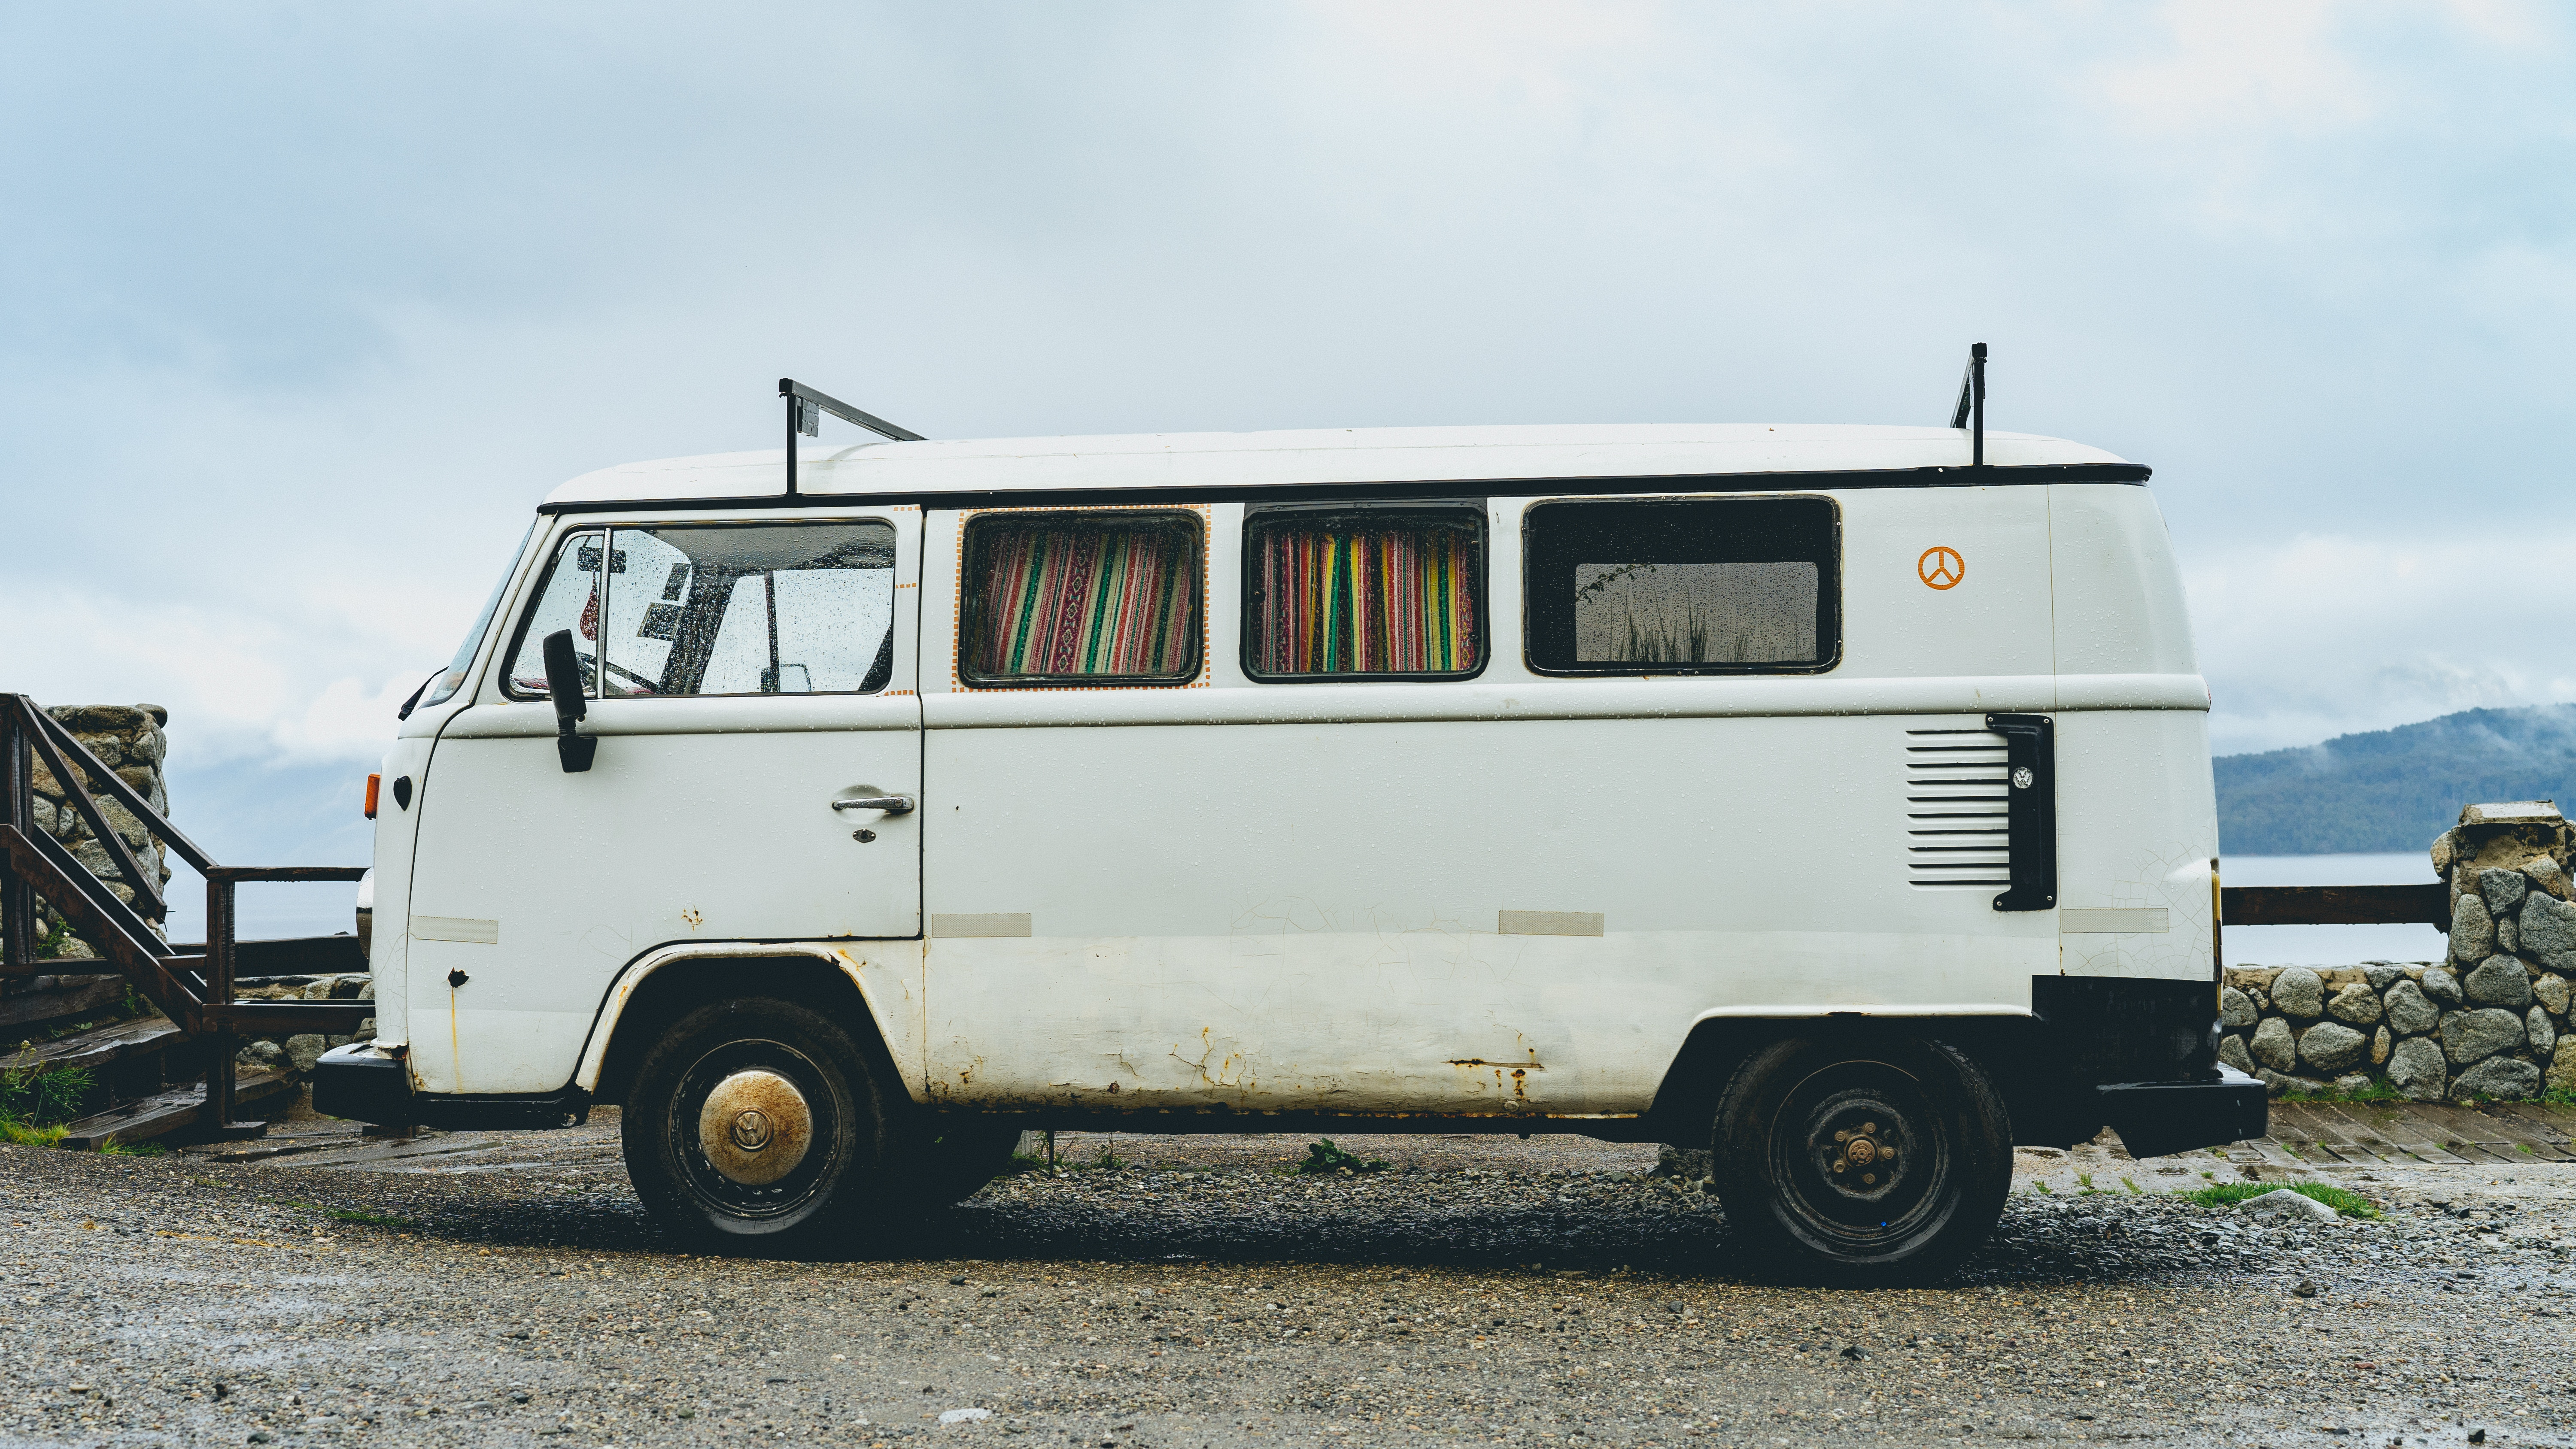 Rusty Campervan